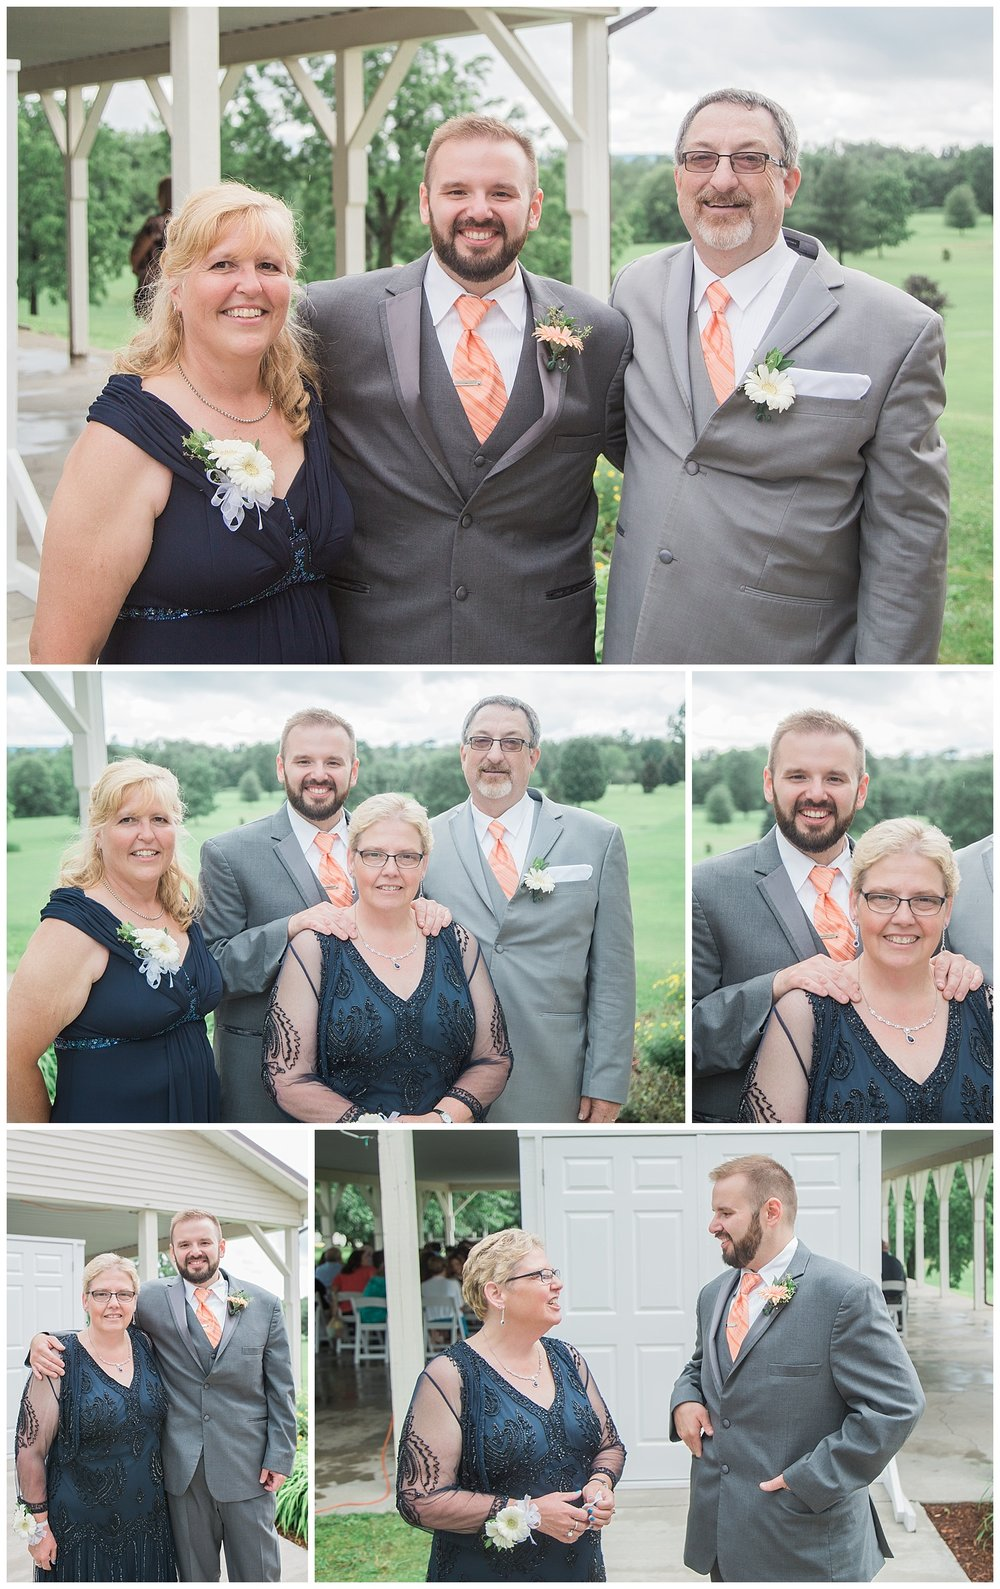 Brian and Molly Wed in Conesus NY - Lass & Beau-152_Buffalo wedding photography.jpg